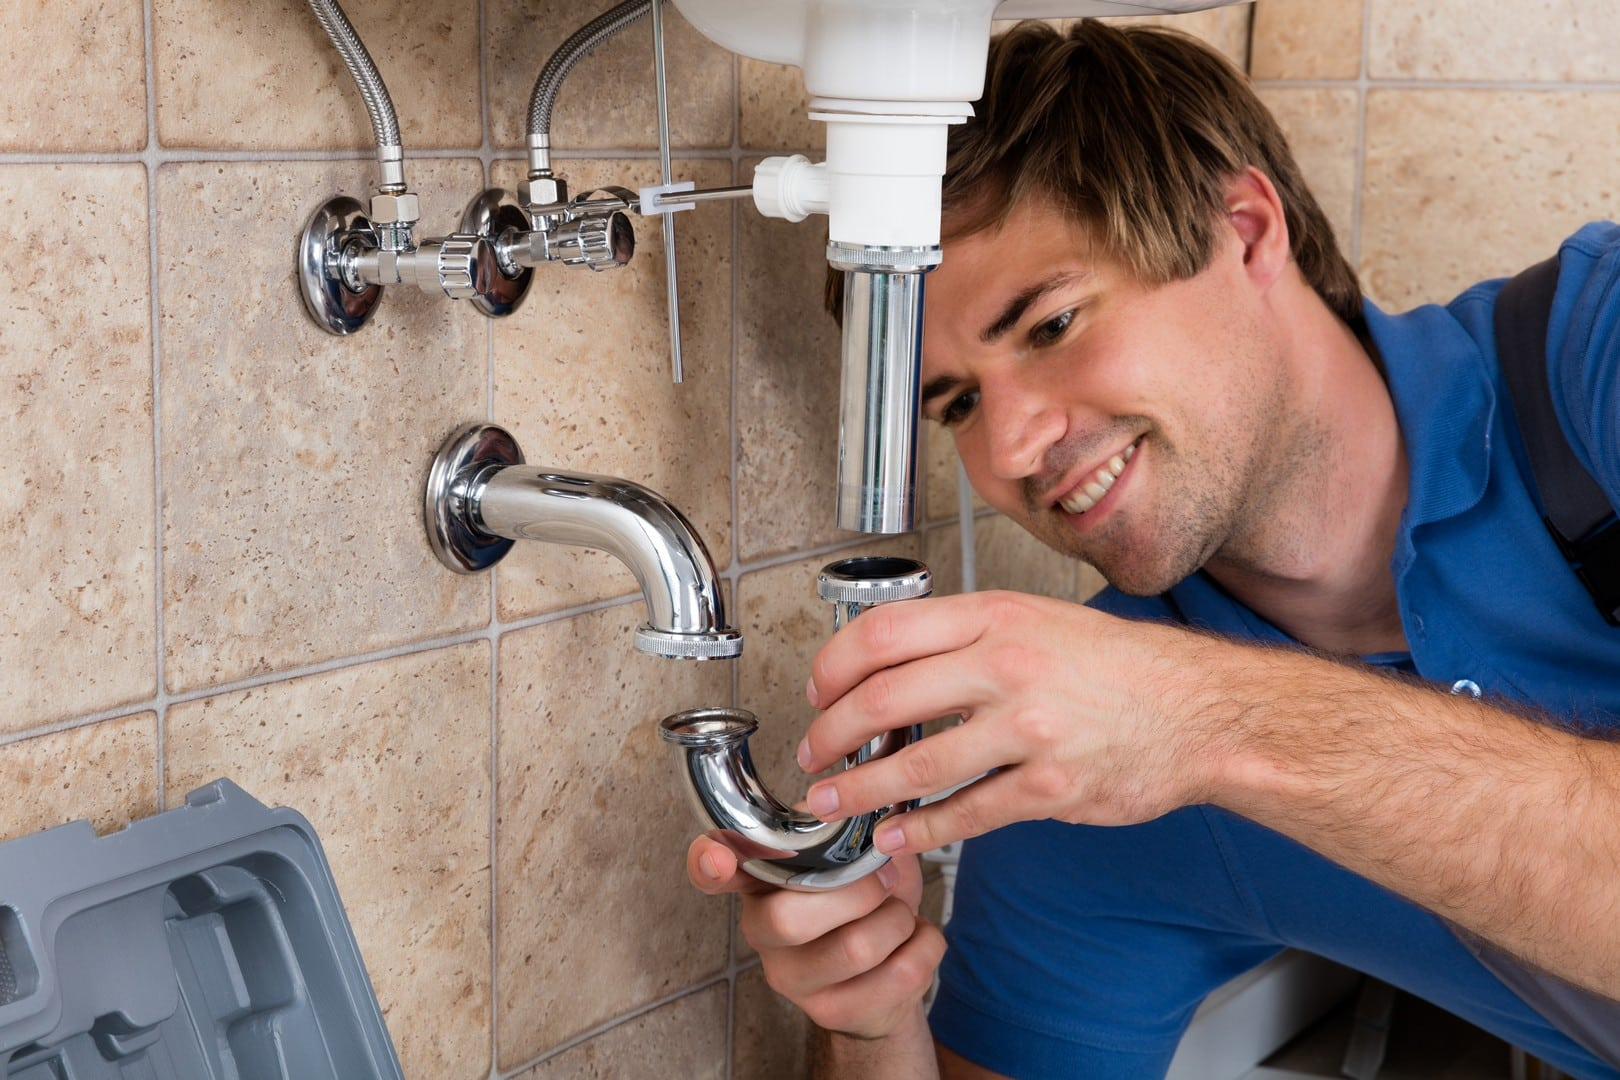 Plumbing Company - How to Pick the Best One